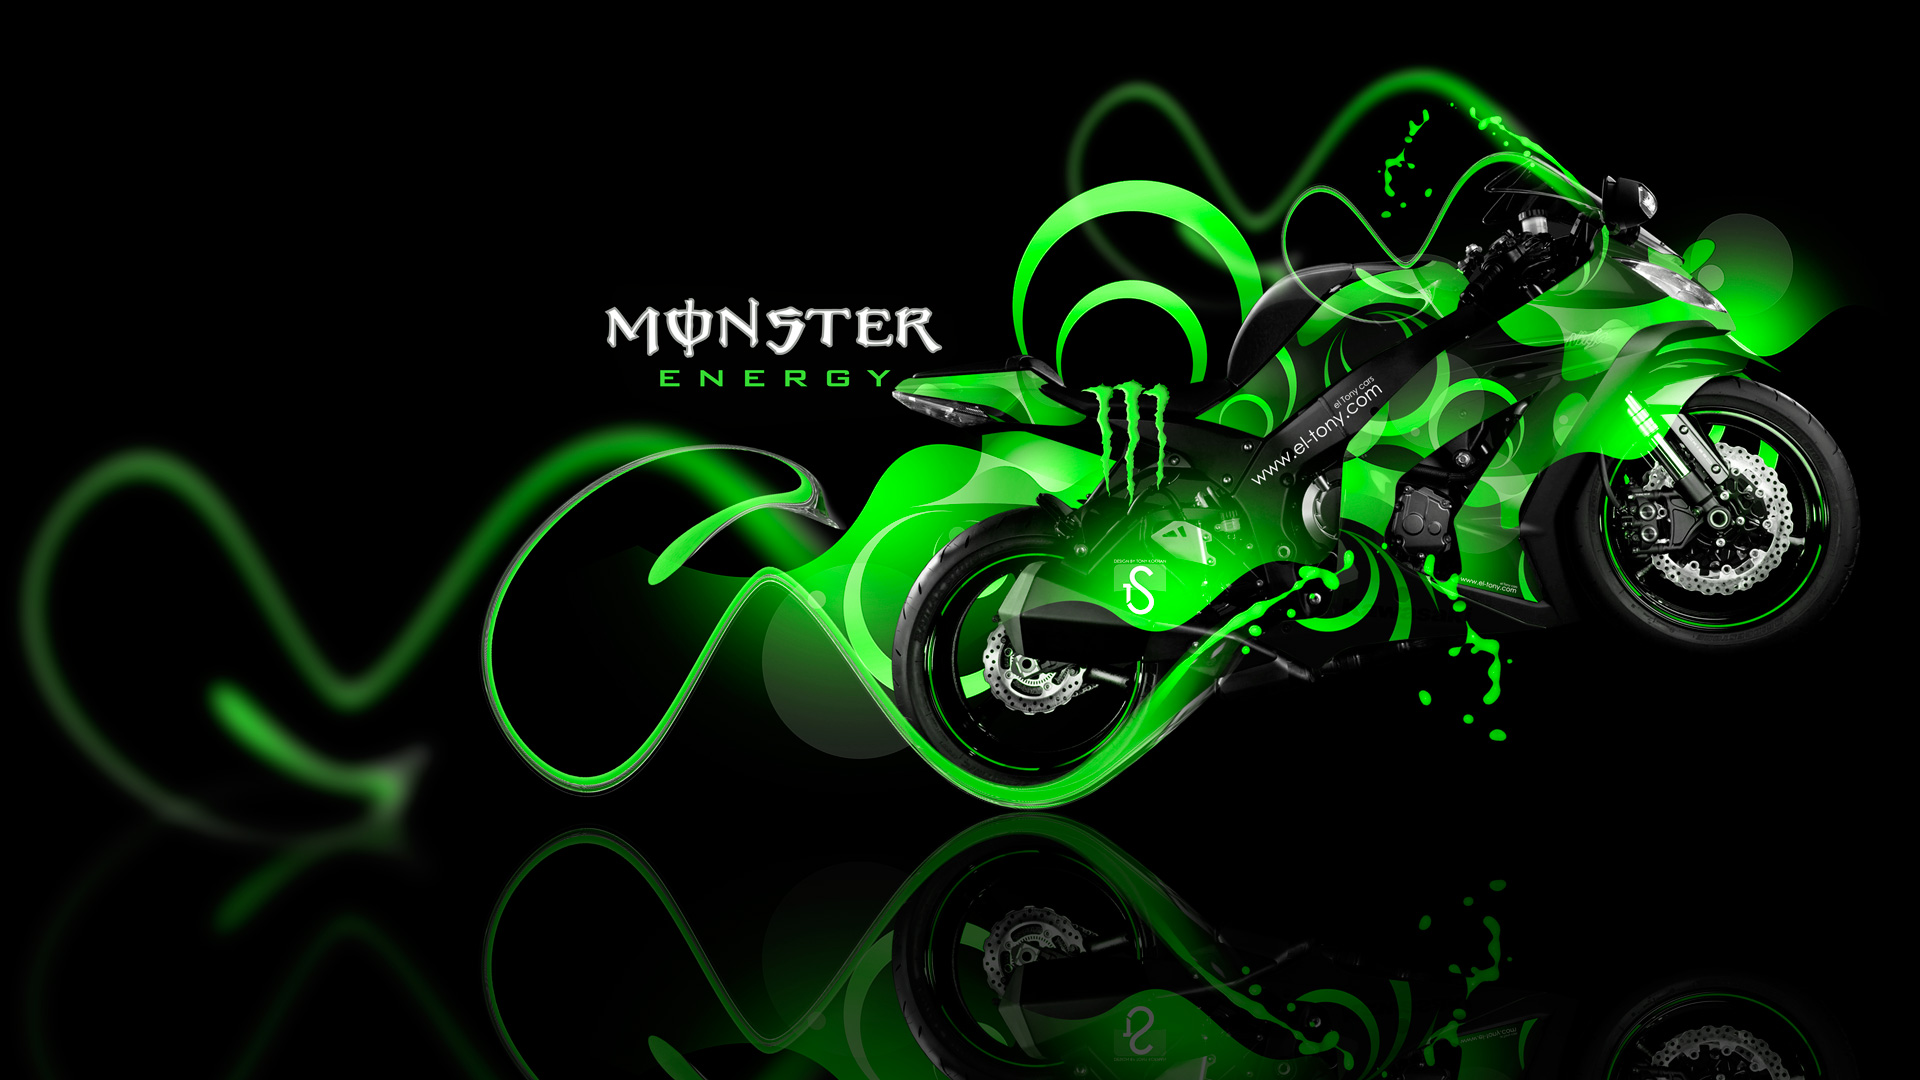 Monster energy wallpapers pictures images monster energy wallpaper voltagebd Images